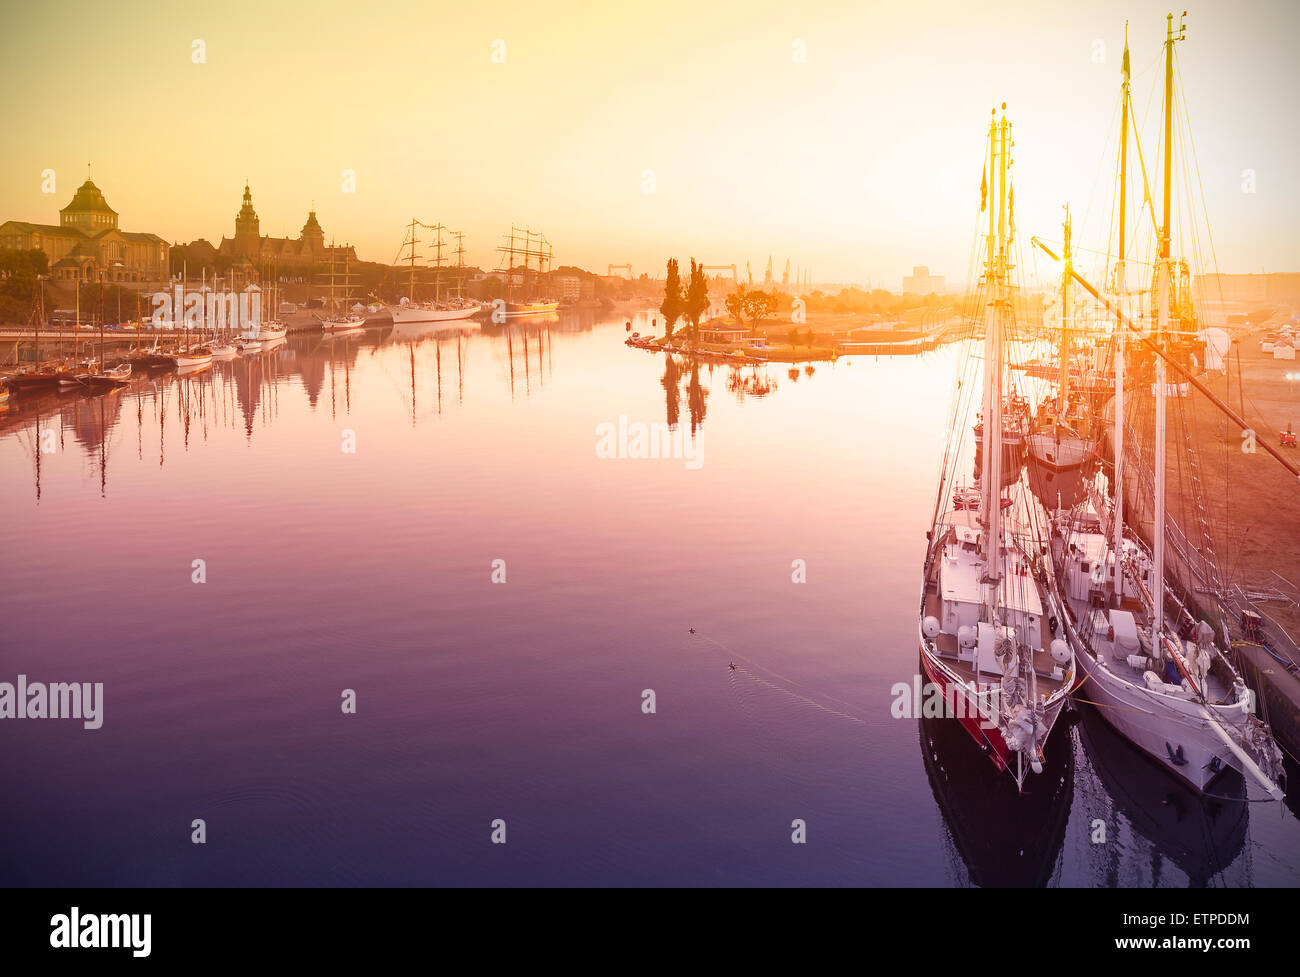 Beautiful sunrise over harbor, waterfront in Szczecin, Poland. - Stock Image